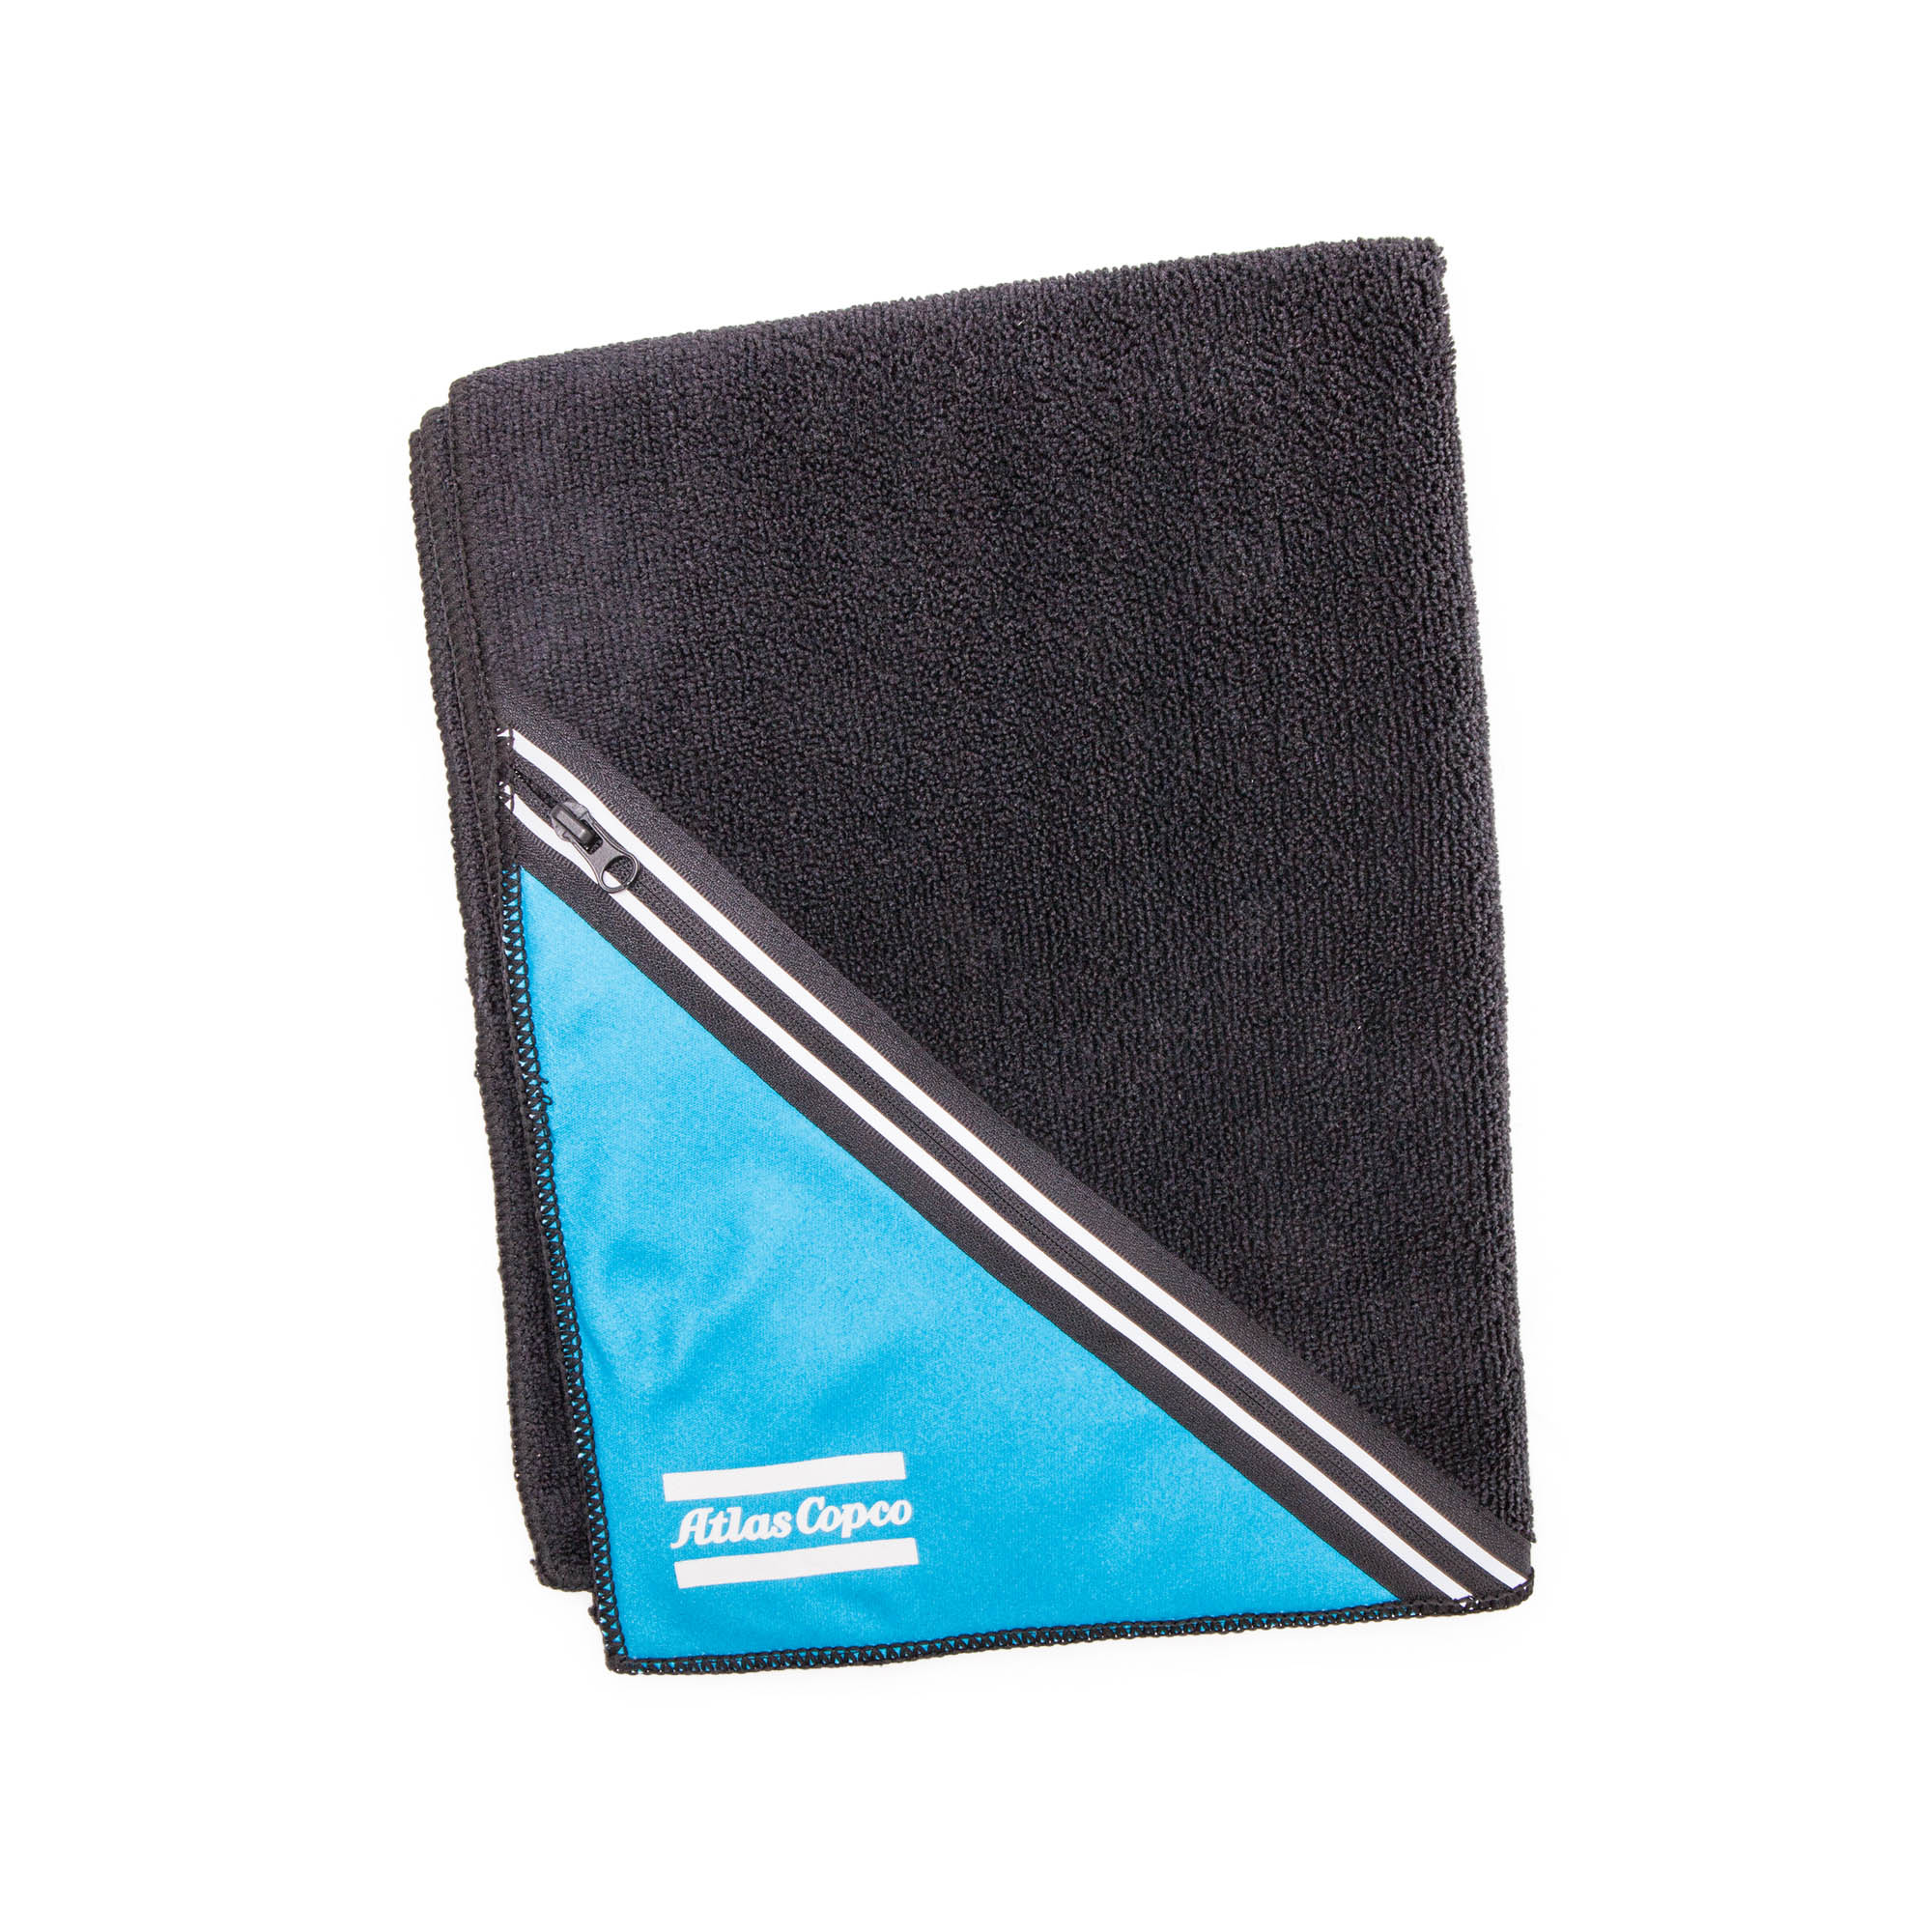 A stylish sports towel with impressive absorbency. Use it to dry off after a shower or to dry excess perspiration when you're working out. The Performance Training Towel has a smart zippered pocket to store things you want to have with you such as keys, phone, purse/wallet.